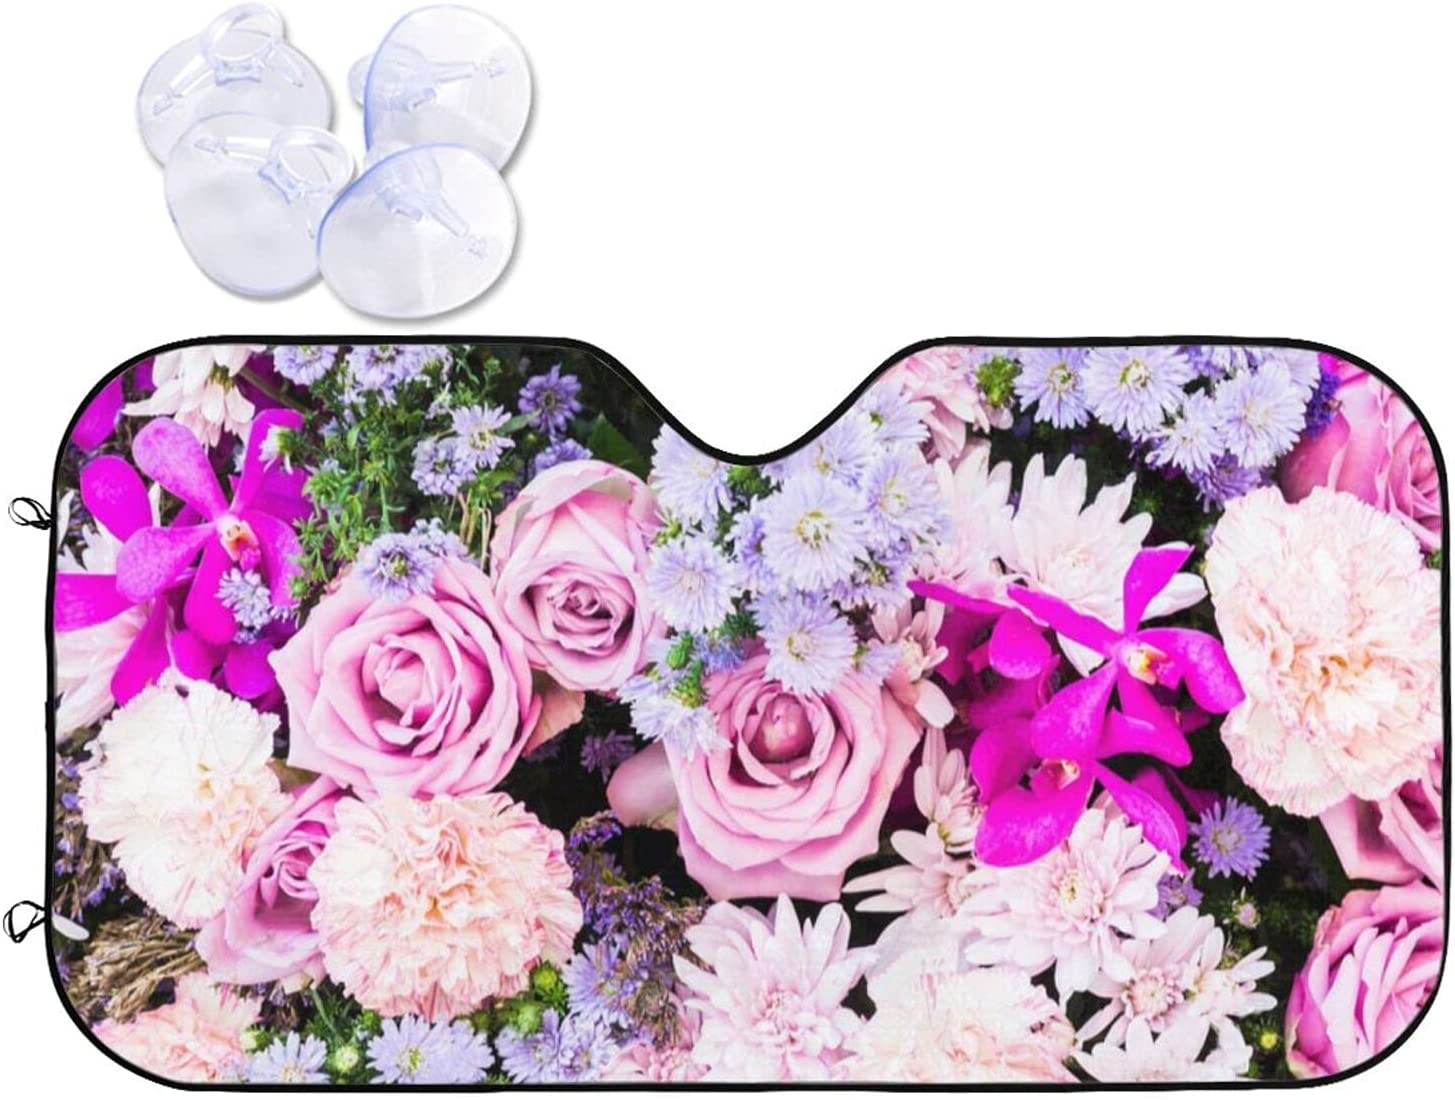 Colorful Nature Flower Backgrounds Car Discount Now on sale mail order Sun Rays Shade UV Blocks